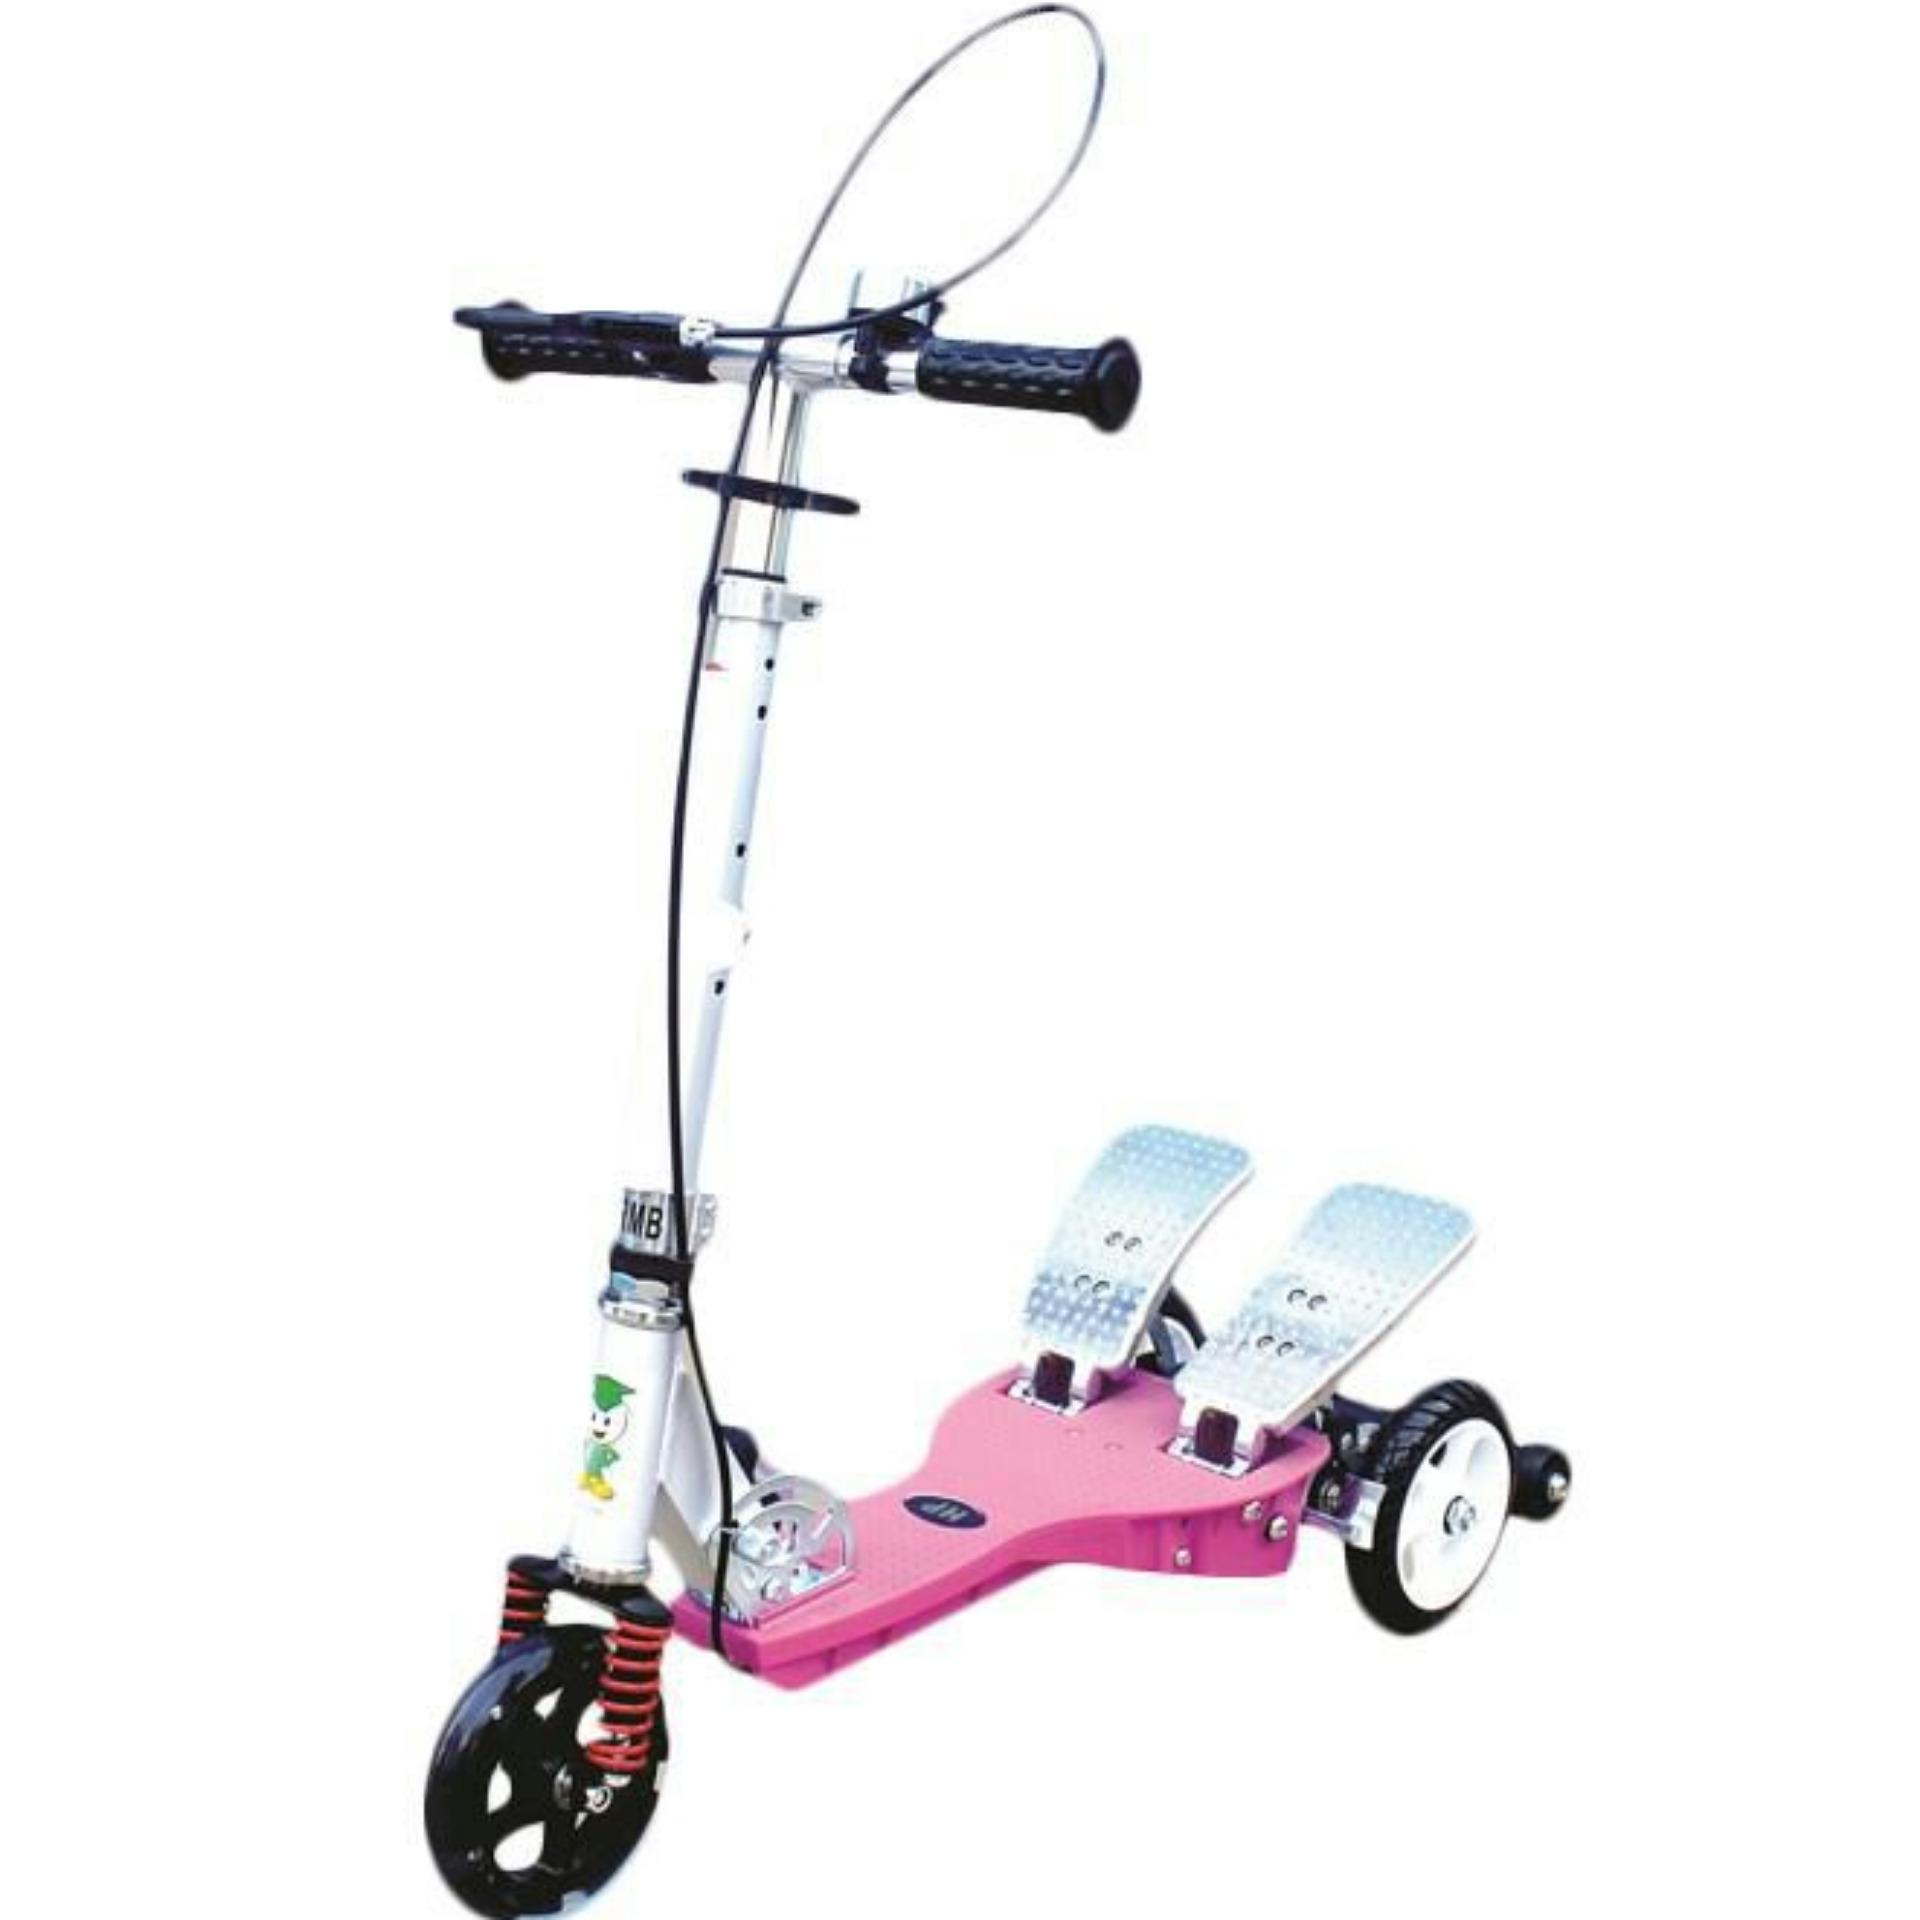 Skuter/Scooter Injak/Otopet RMB QY11AP - Pink